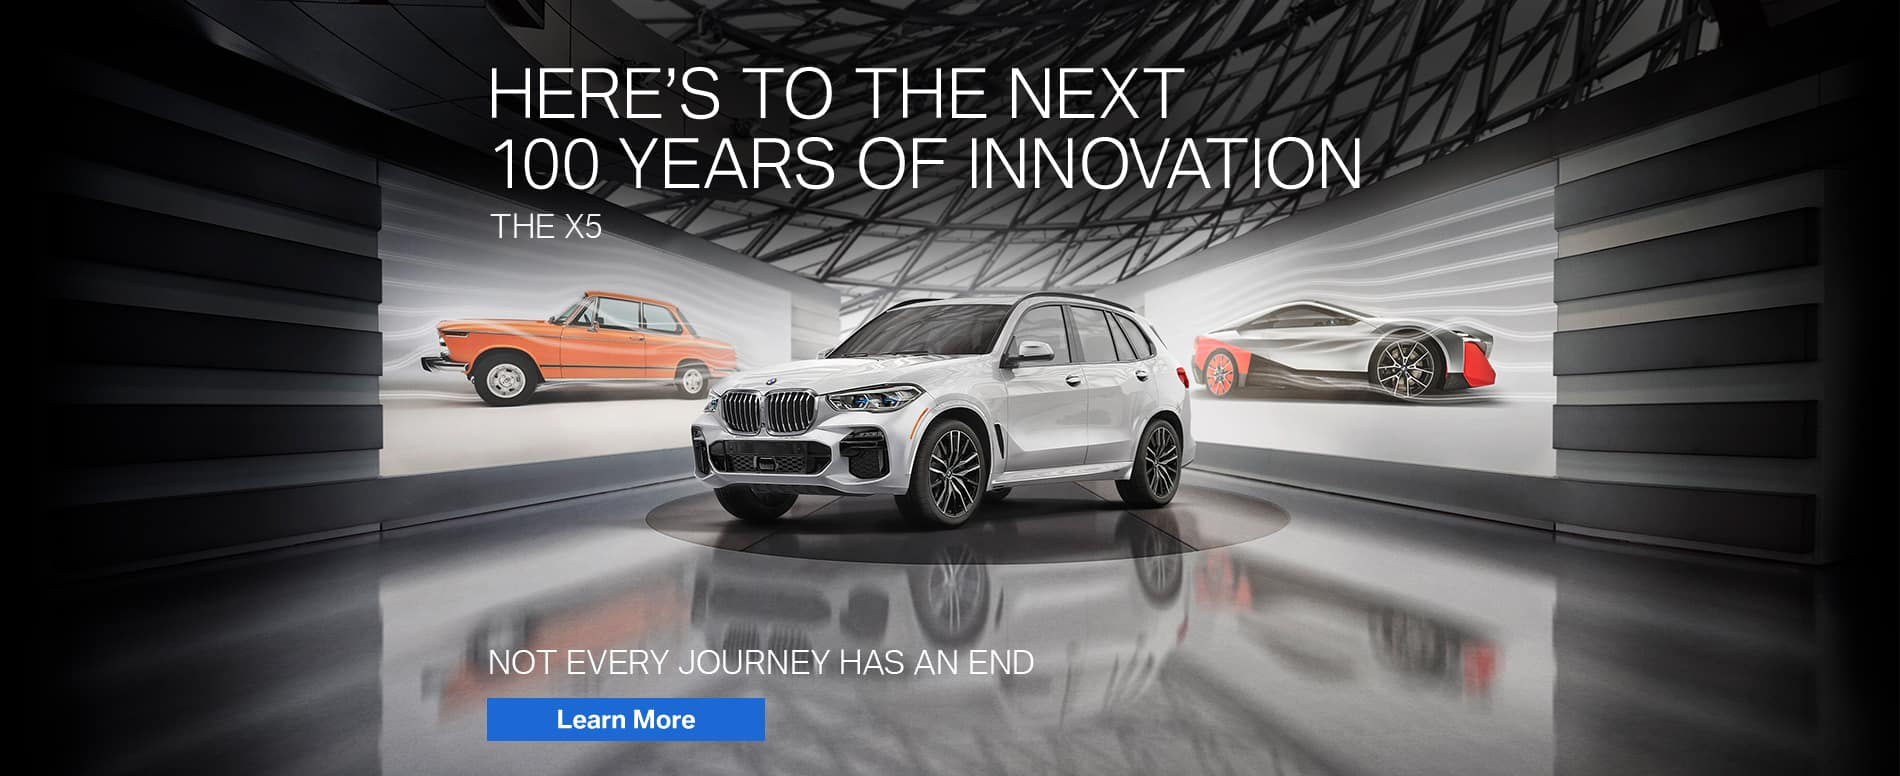 FMA1_OCT_PUSH_BMW_X5_Innovation (1)